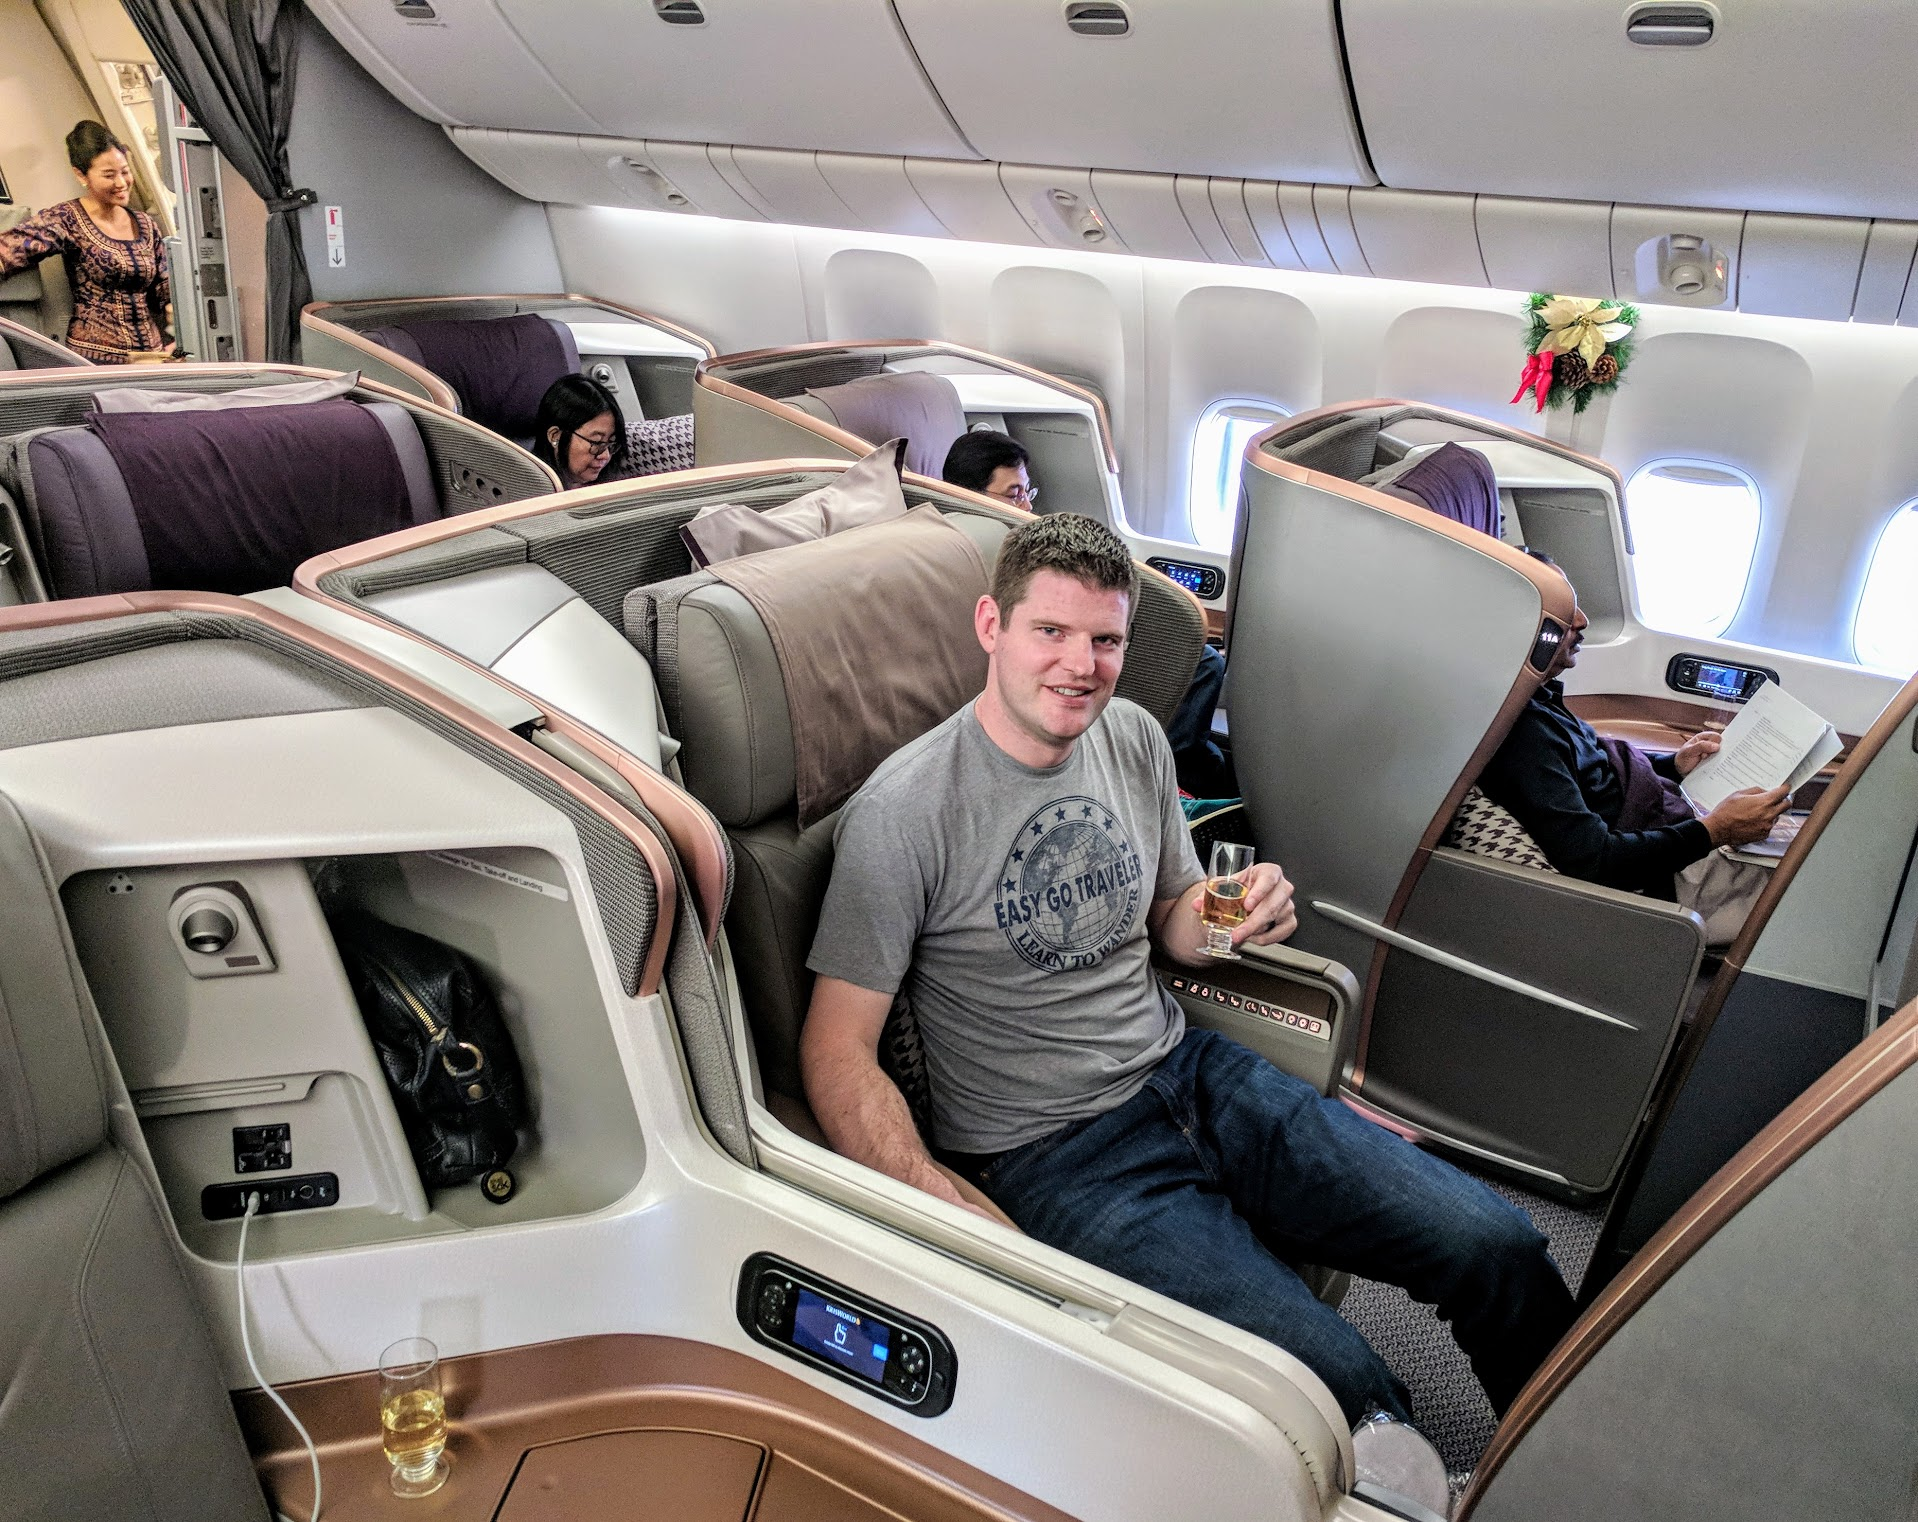 Easy Go Traveler, Airplane, First Class, Singapore Air, Airlines, Award Travel